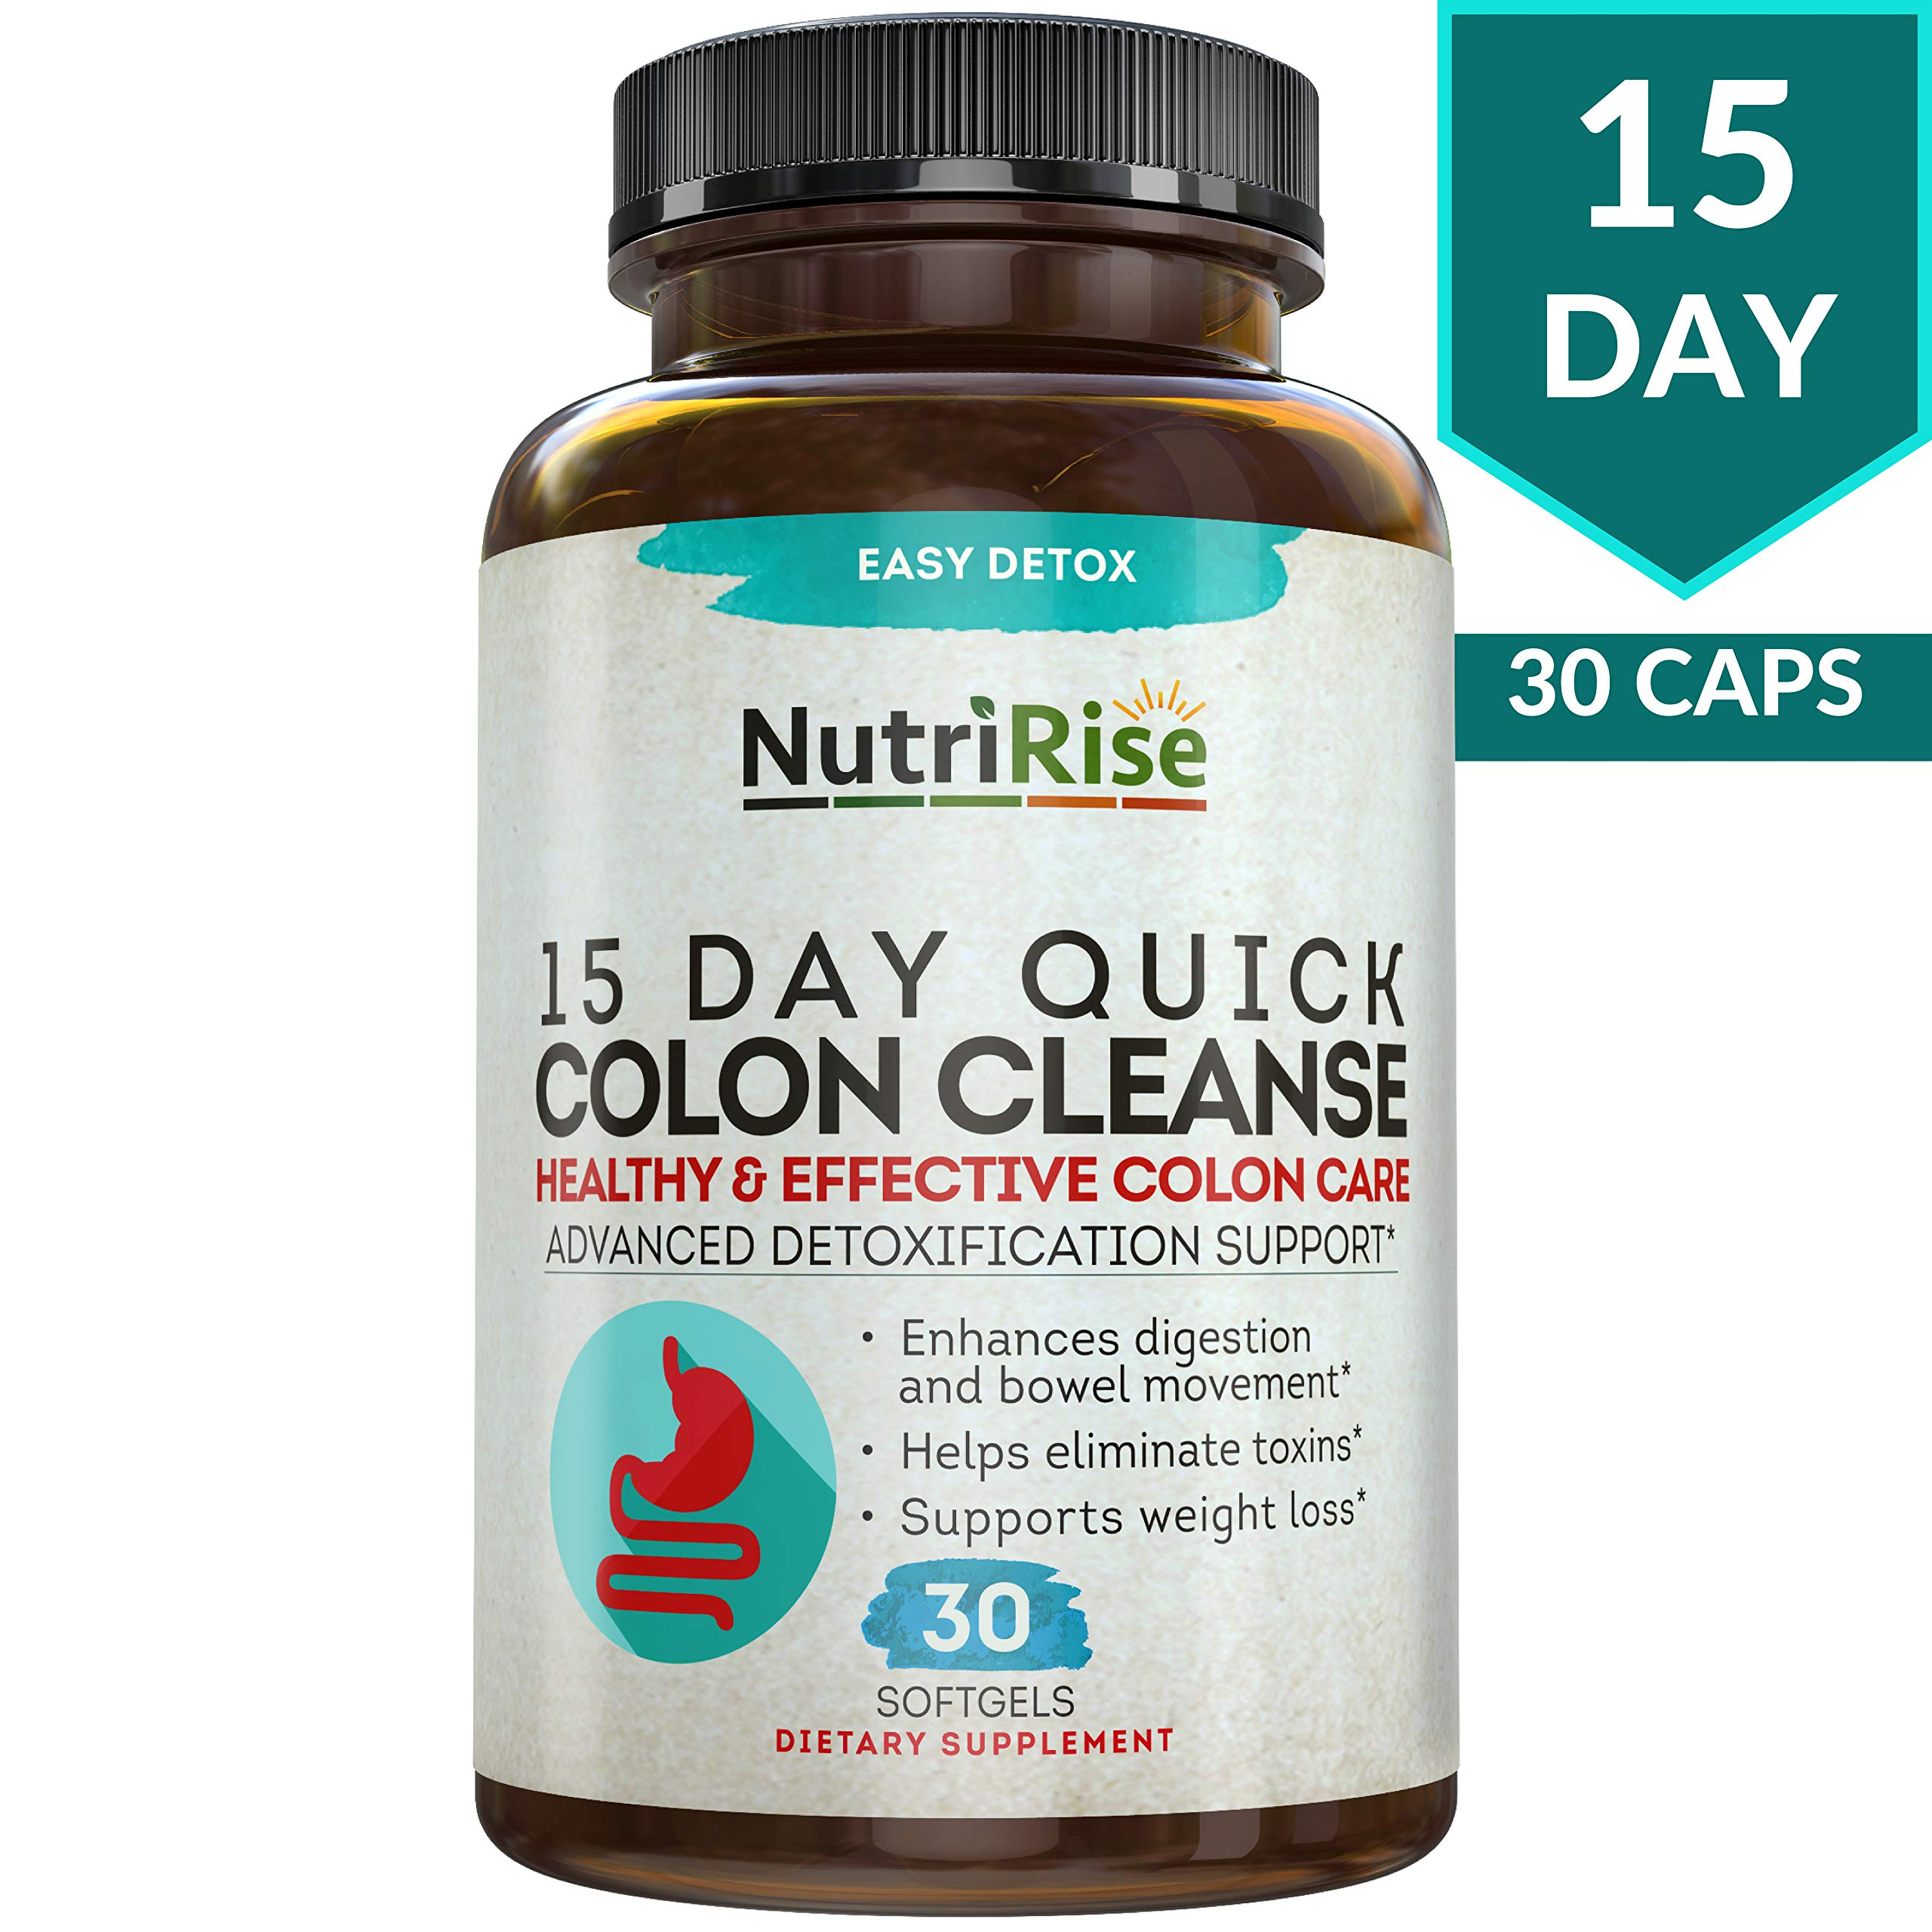 Colon Cleanser Detox for Weight Loss. 15 Day Fast-Acting Extra-Strength Cleanse with Probiotic & Natural Laxatives for Constipation Relief & Bloating Support. 30 Detox Pills to Detoxify & Boost Energy by NutriRise